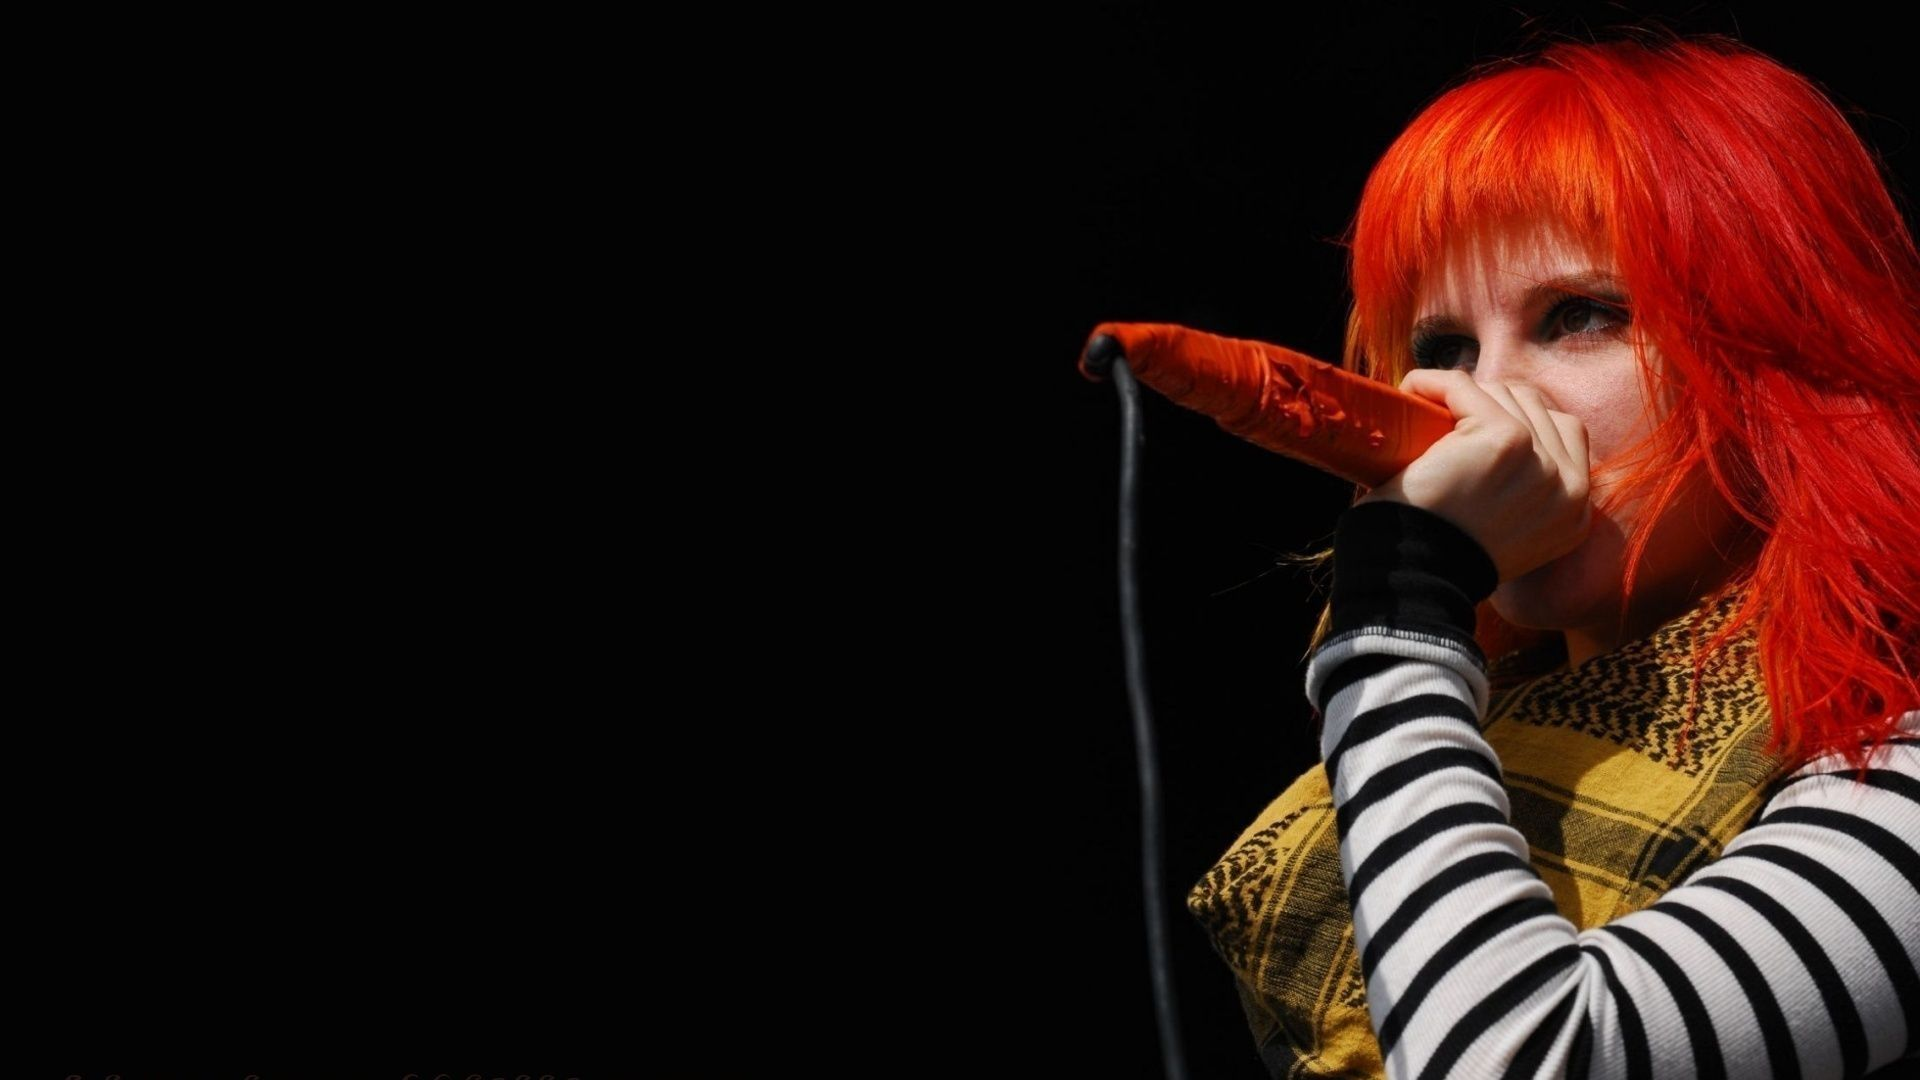 hayley williams wallpaper wallpapers kitchen babes 1920x1080 1920x1080